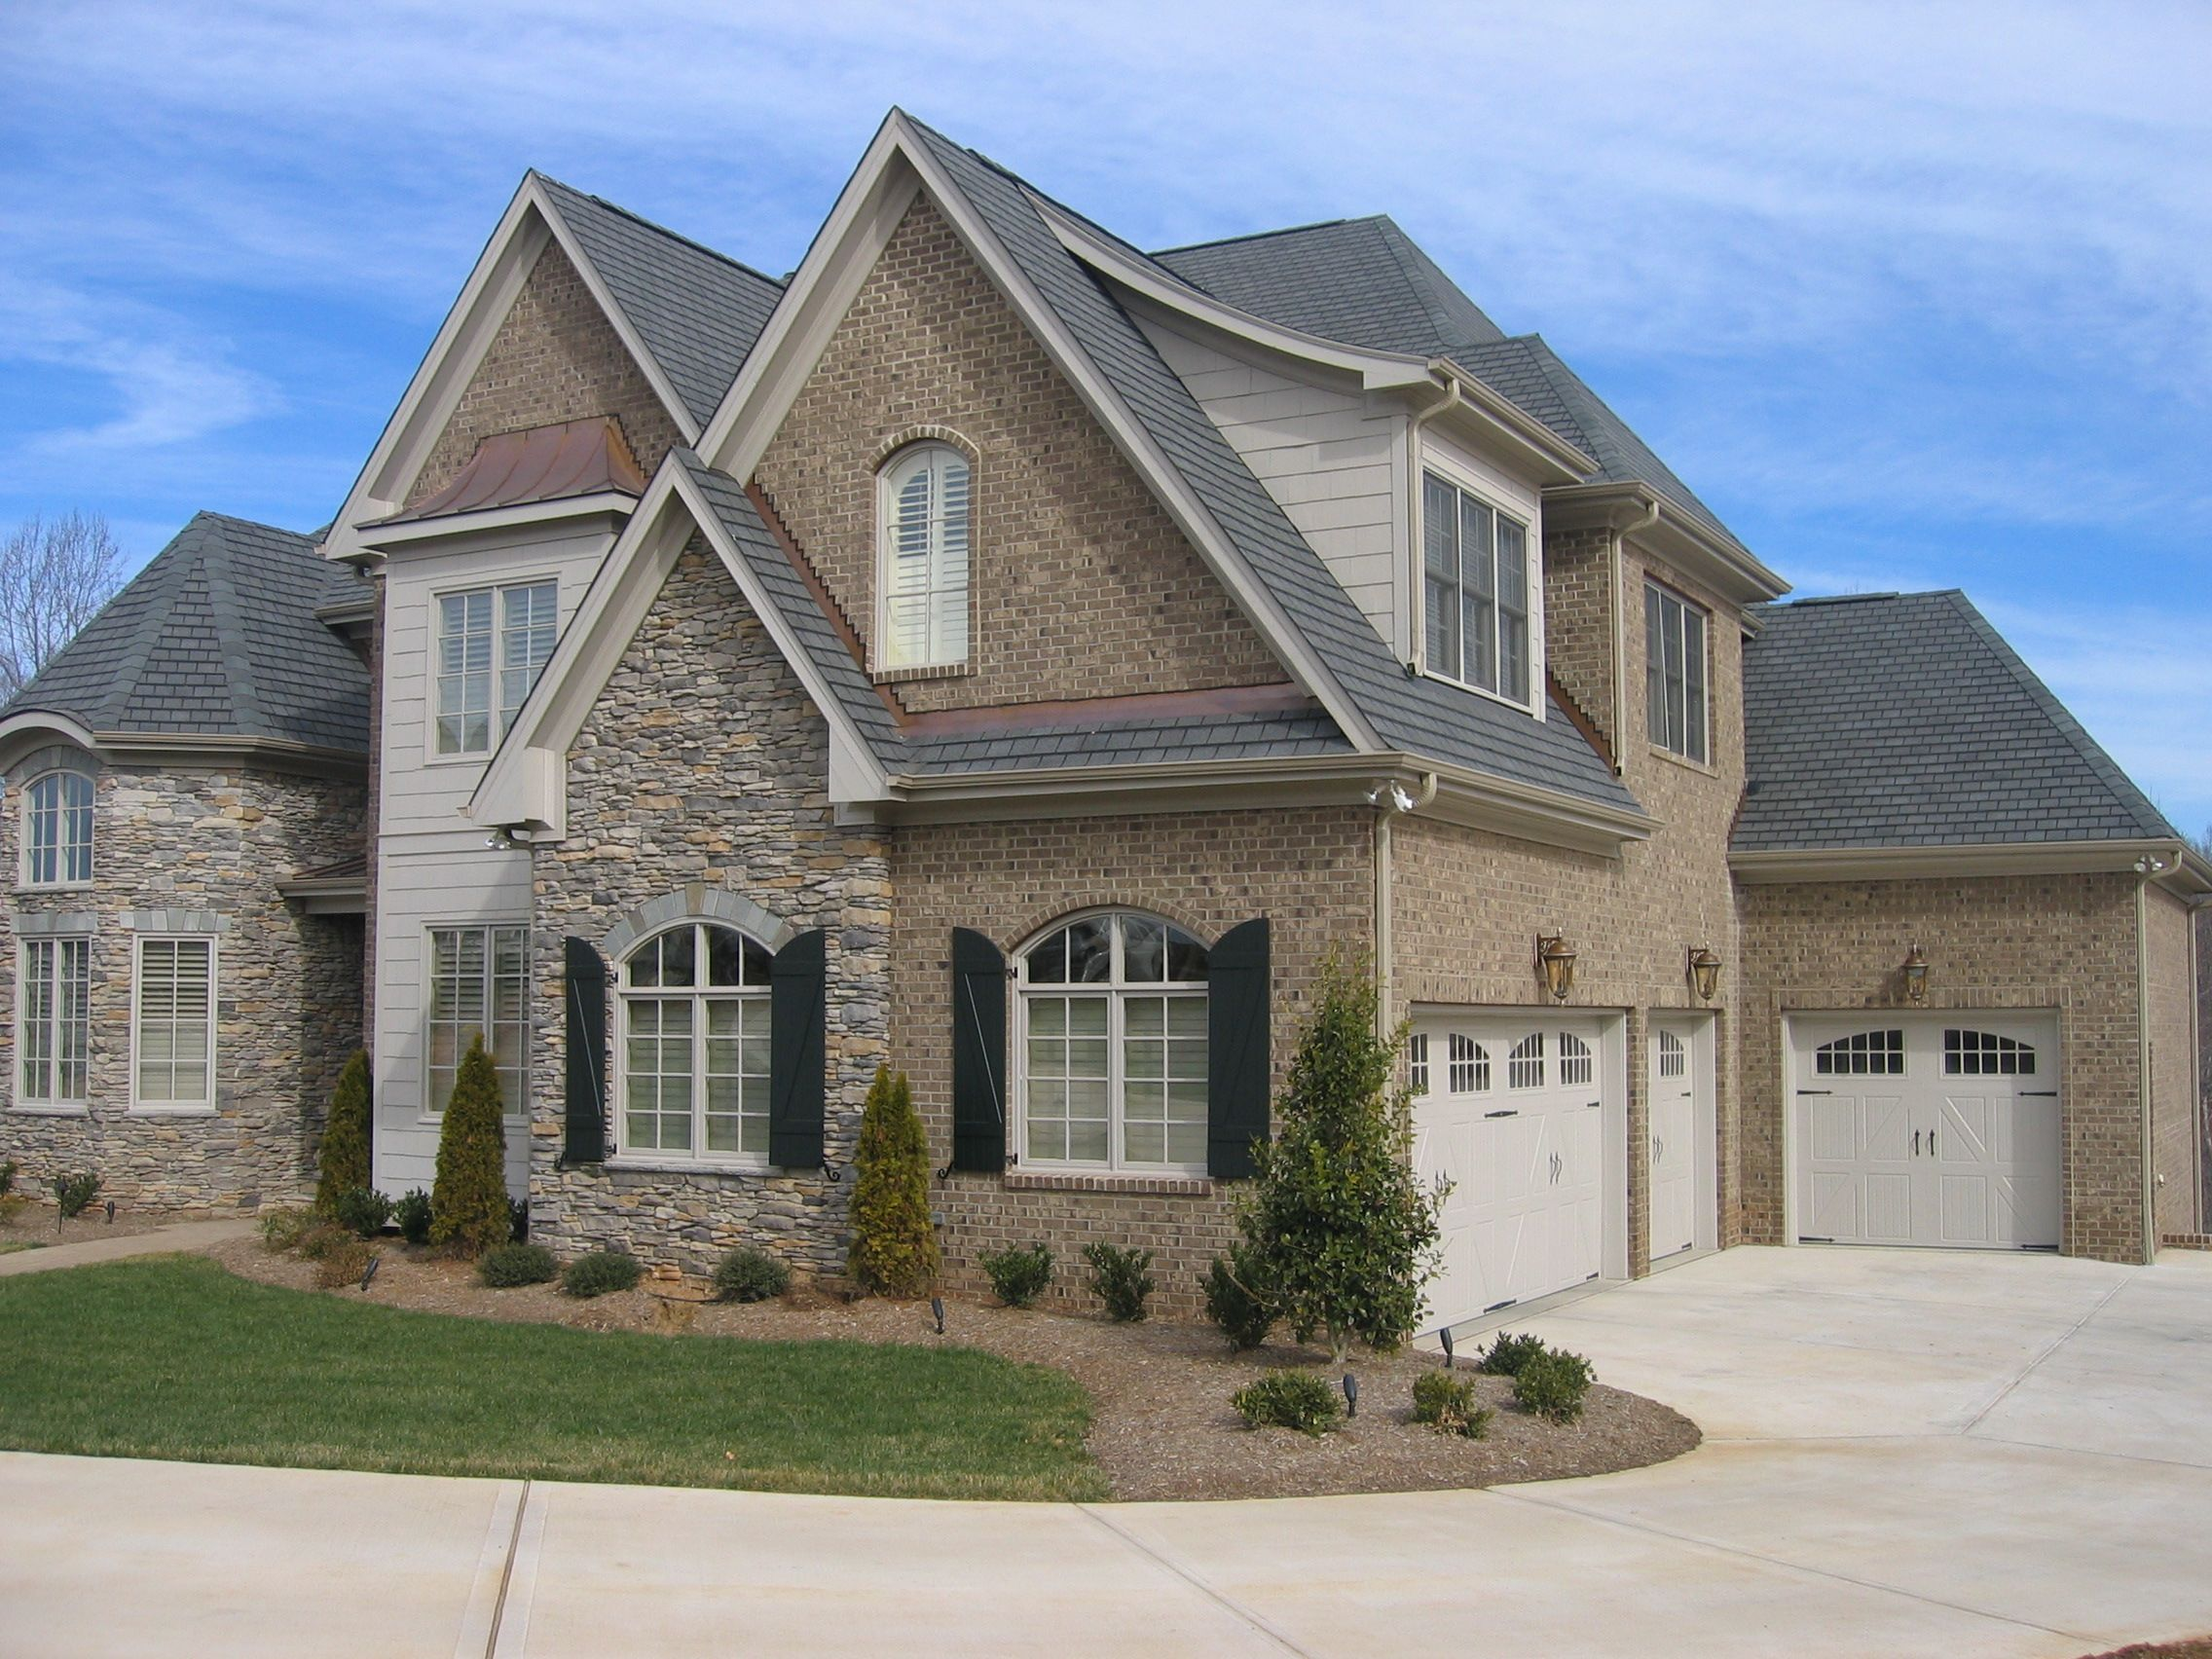 Nice craftsman style home with pine hall 39 s millstone brick for Craftsman stone